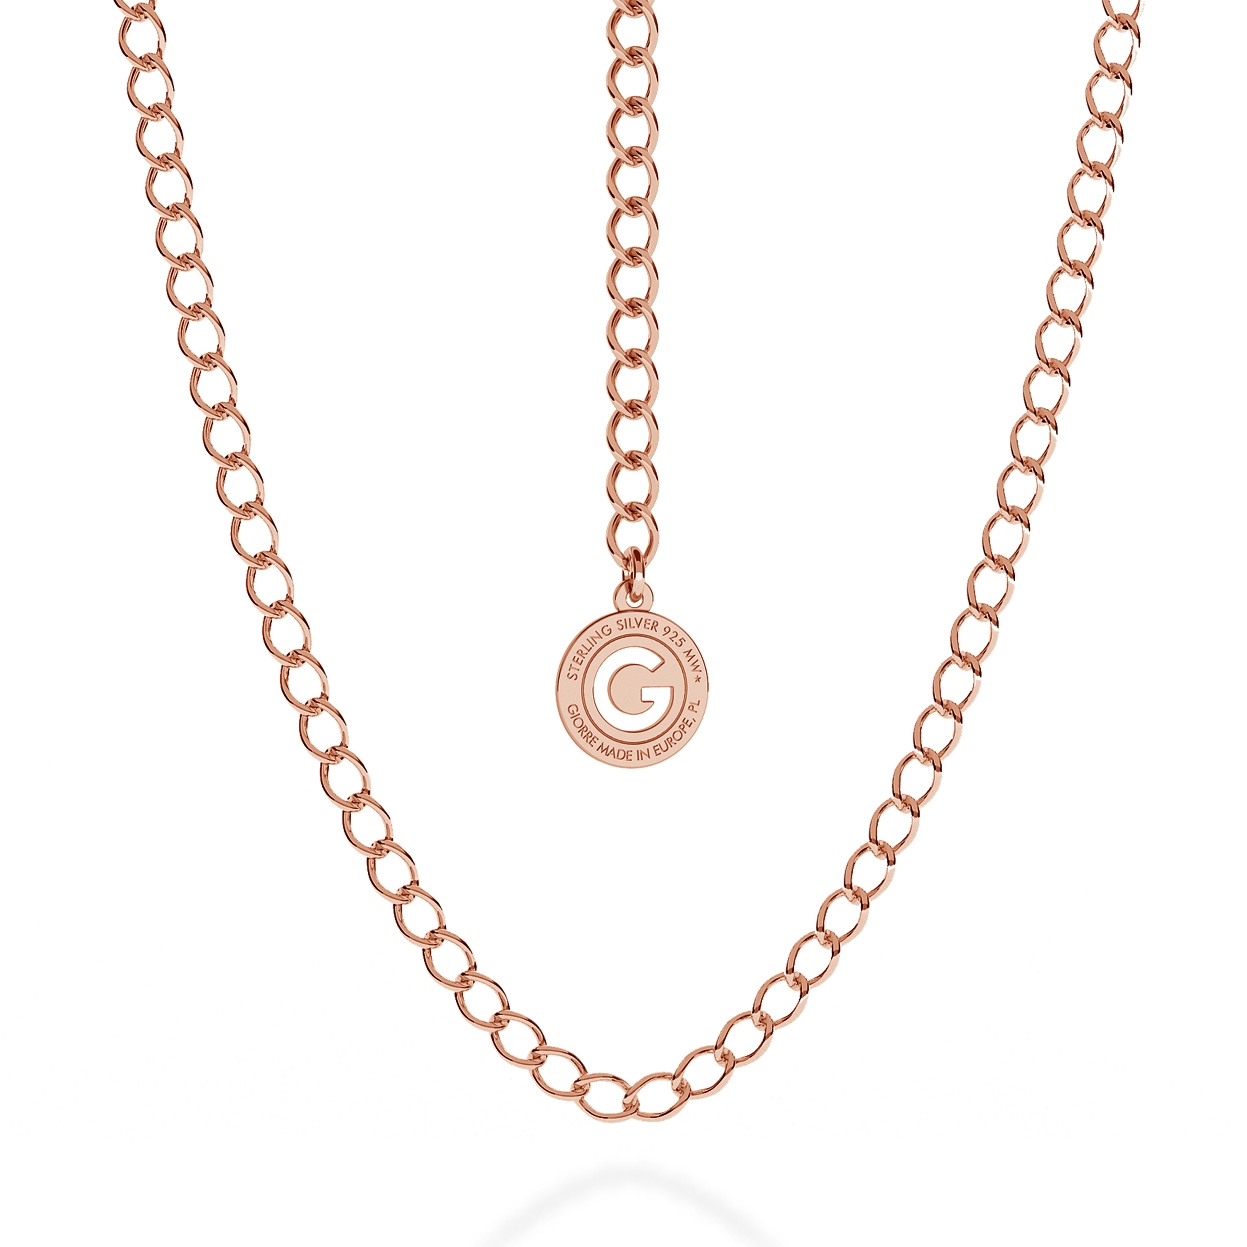 SILVER NECKLACE ROMBO 55-65 CM, GOLD PLATED (PINK GOLD)